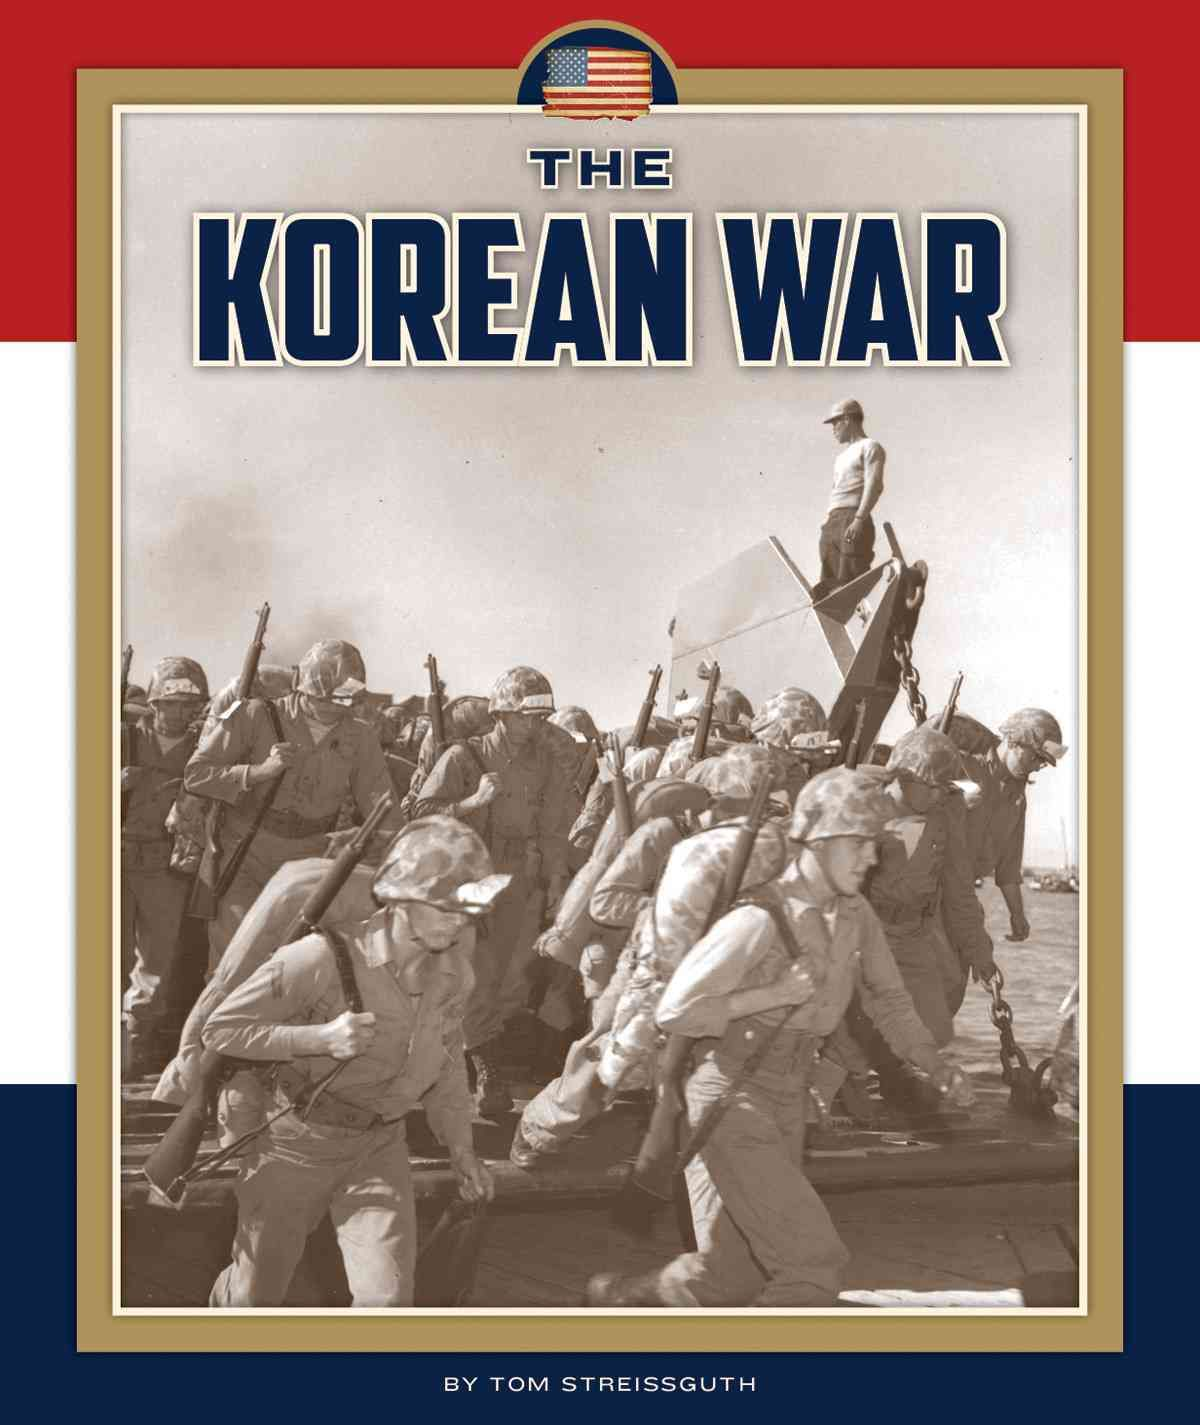 Offers An Overview Of The Korean War Including How It